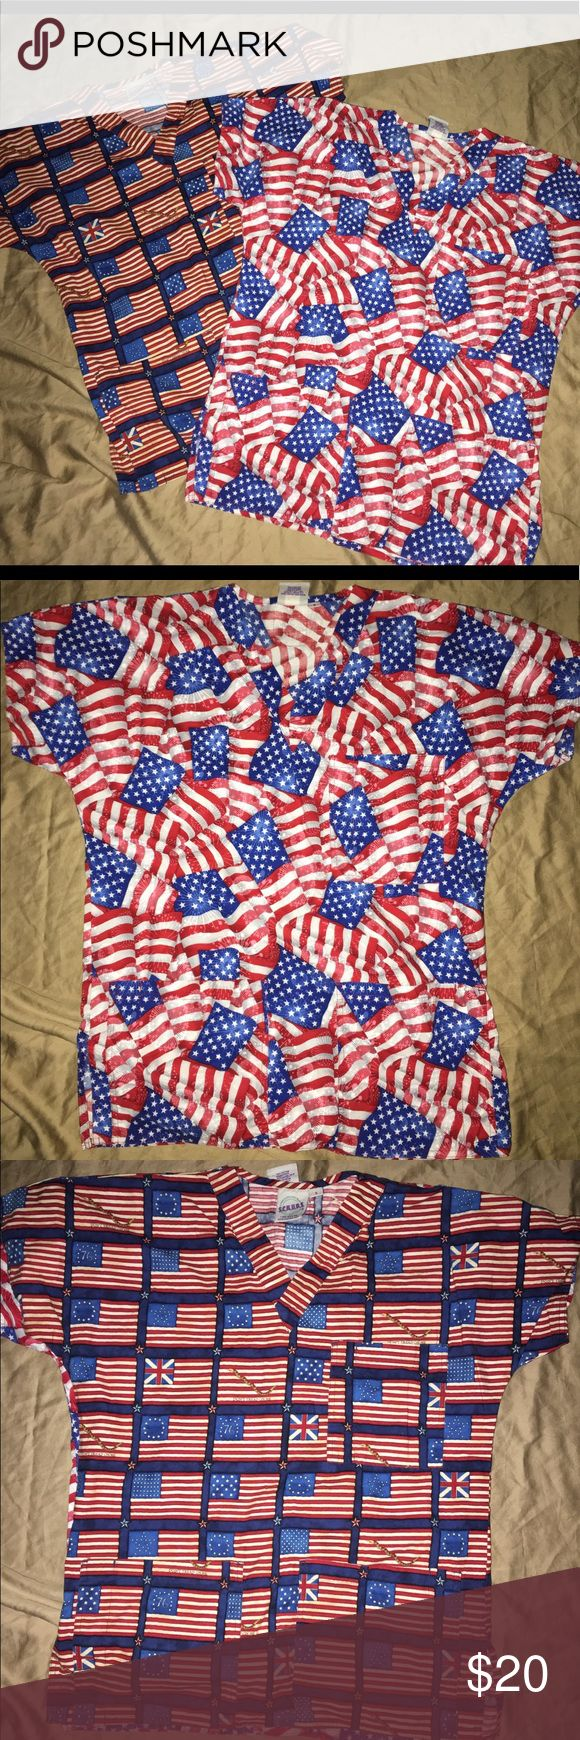 """SCRUBS womens american themed scrub top sz: S for sale is a two-piece womens medical/dental scrub set.  Great condition, no rips or stains. If you have any questions or would like additional photos please feel free to ask.   Brand: S.C.R.U.B.S.  Sz: S  Theme: America   Great for Fourth of July, memorial day, Veterans Day, any day you feel like showing support for this great country.   From under one arm to under the other measures appx 22"""" from the top of the shoulder to the bottom of the…"""